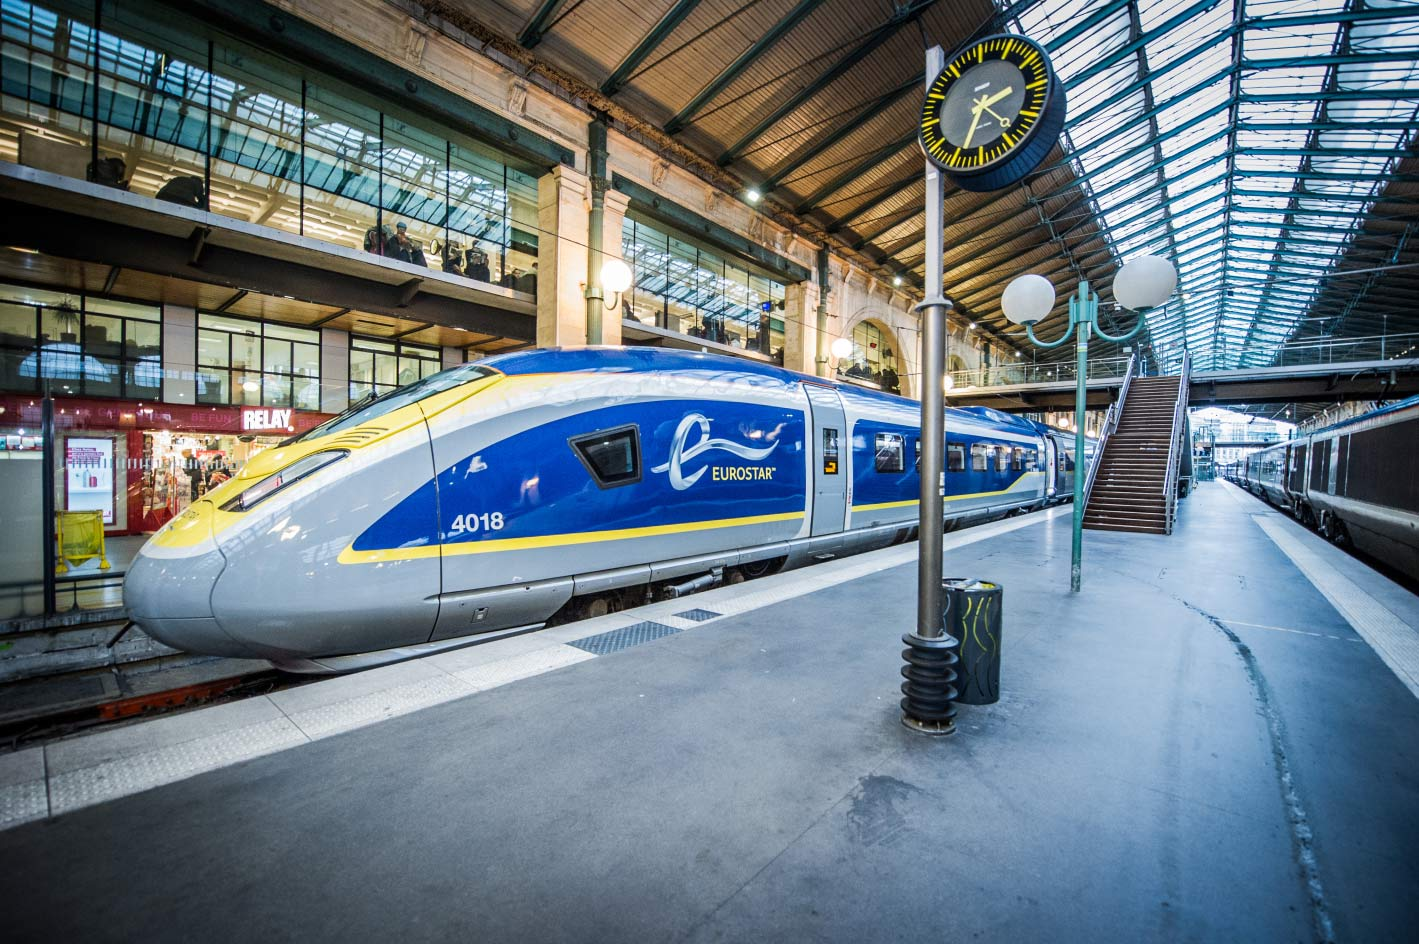 Eurail, Eurostar, London, Amsterdam, Rotterdam, air, competition, environment, travel, fly, service, highspeed, train